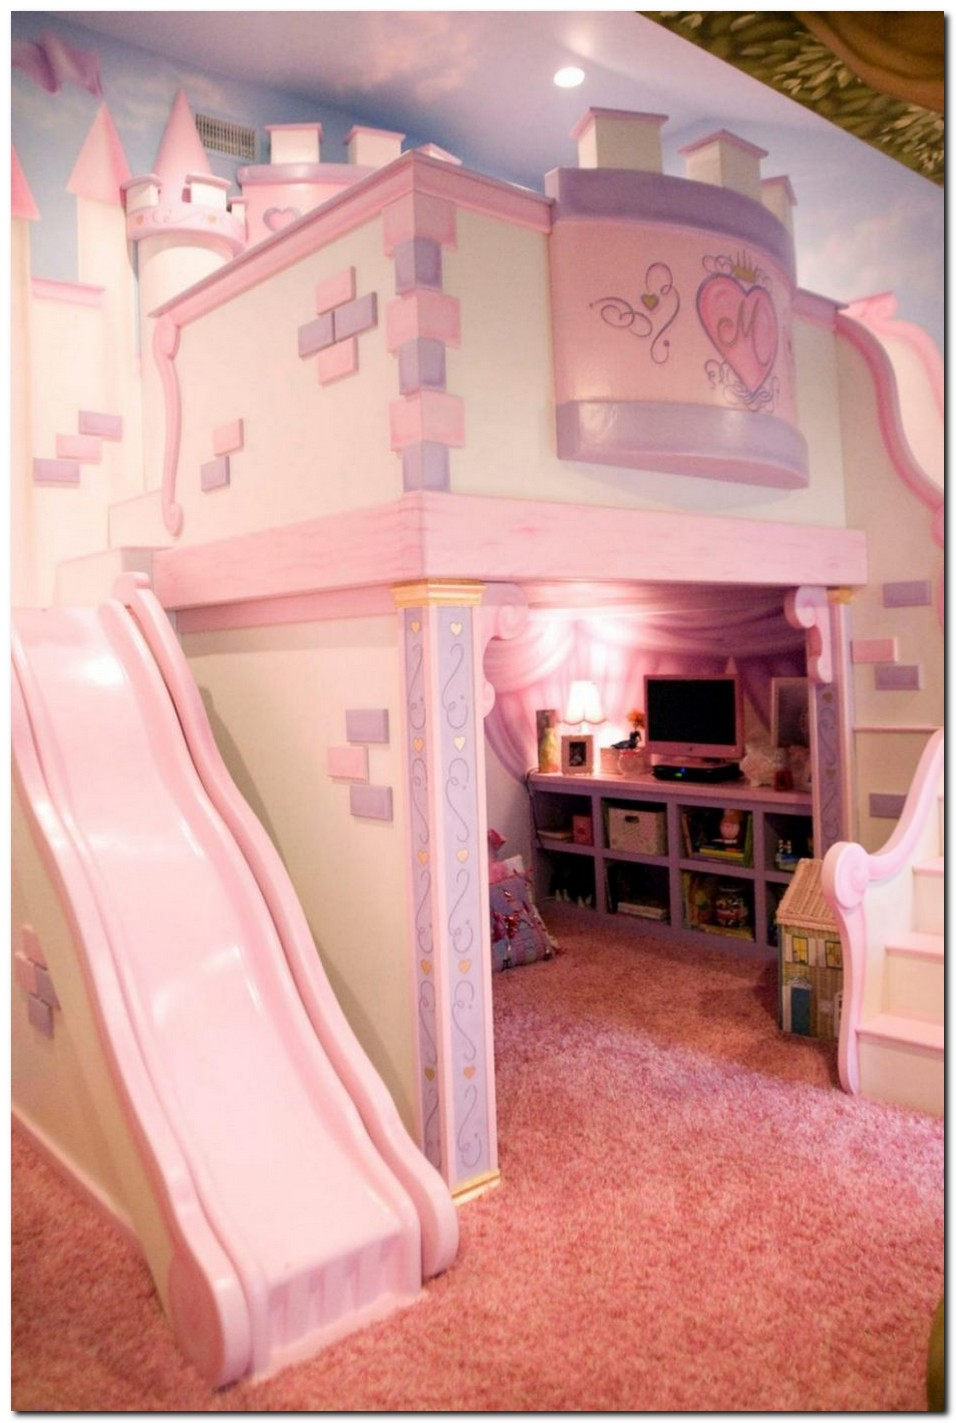 Beds for children choosing bunk beds for kids 19